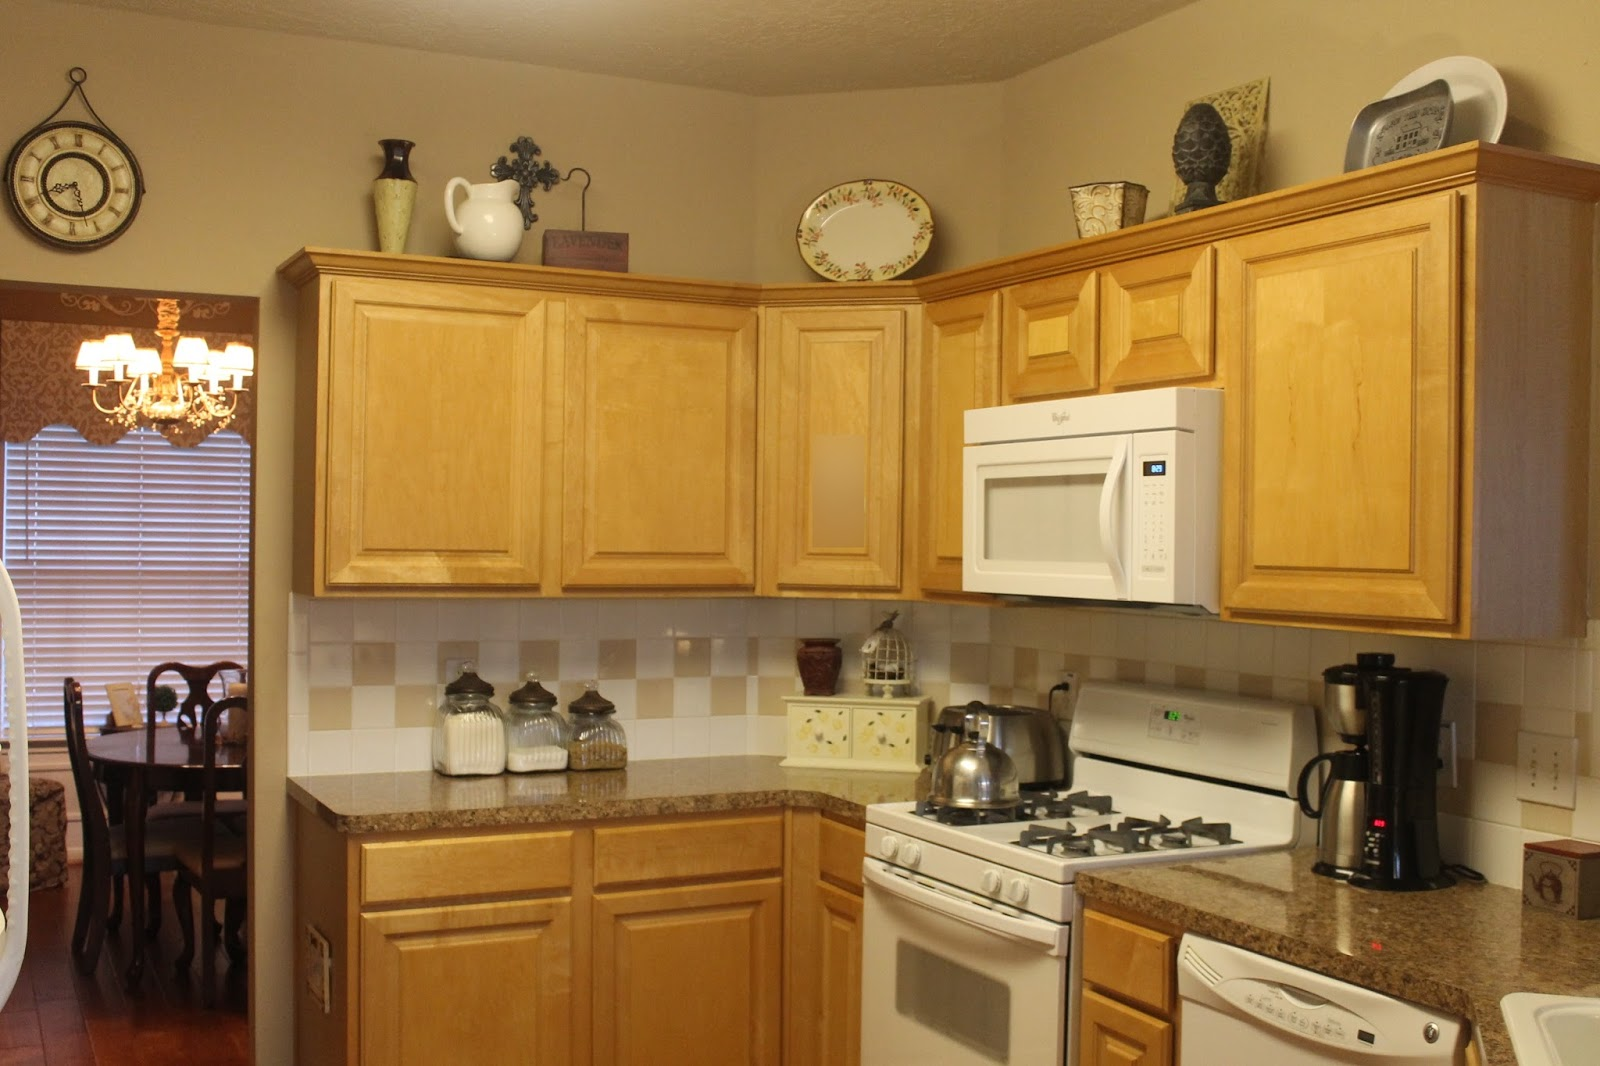 Decorating Above Kitchen Cabinets Texas Decor Rearranging The Tops Of My Kitchen Cabinets